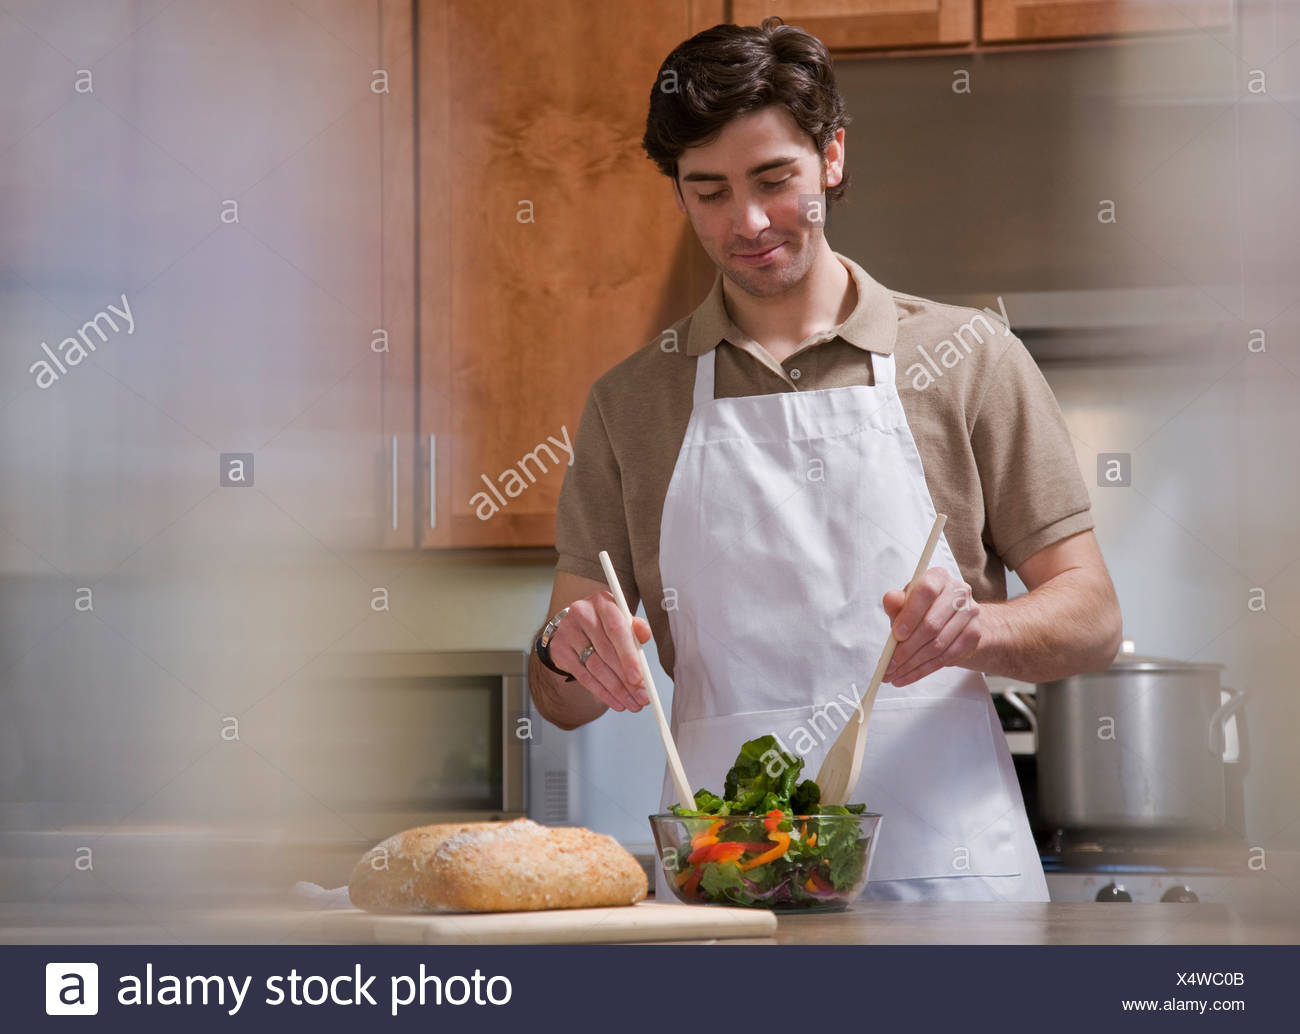 man cooking in kitchen - Stock Image